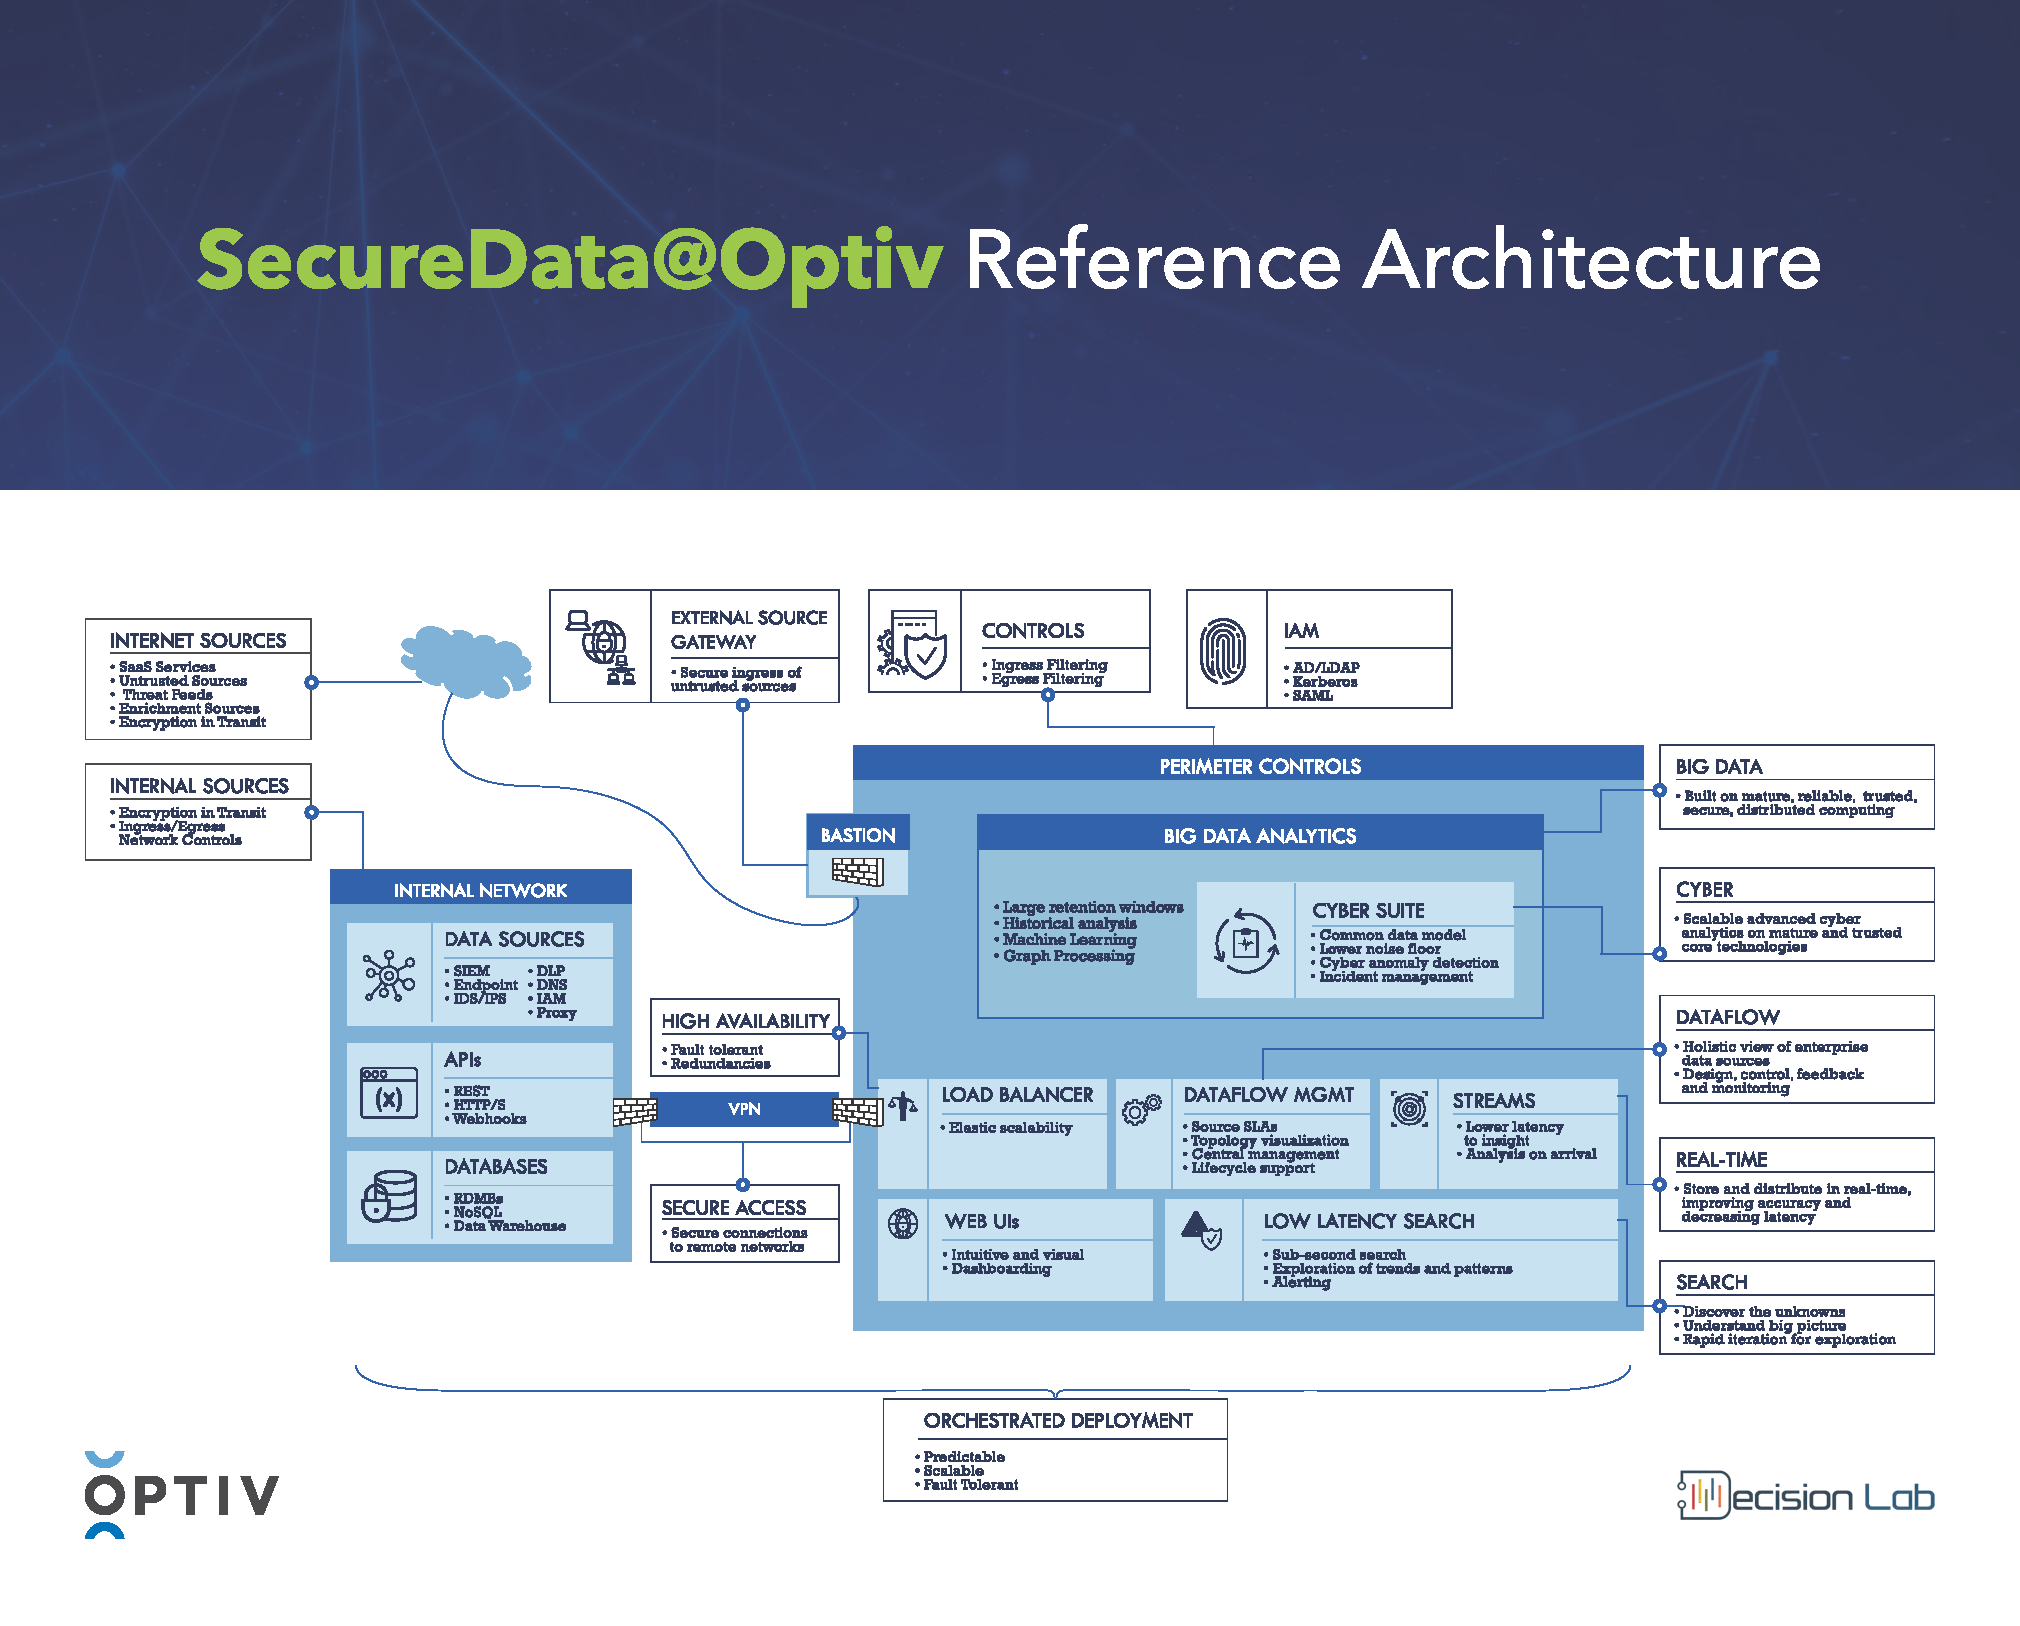 SecureData@Optiv Reference Architecture